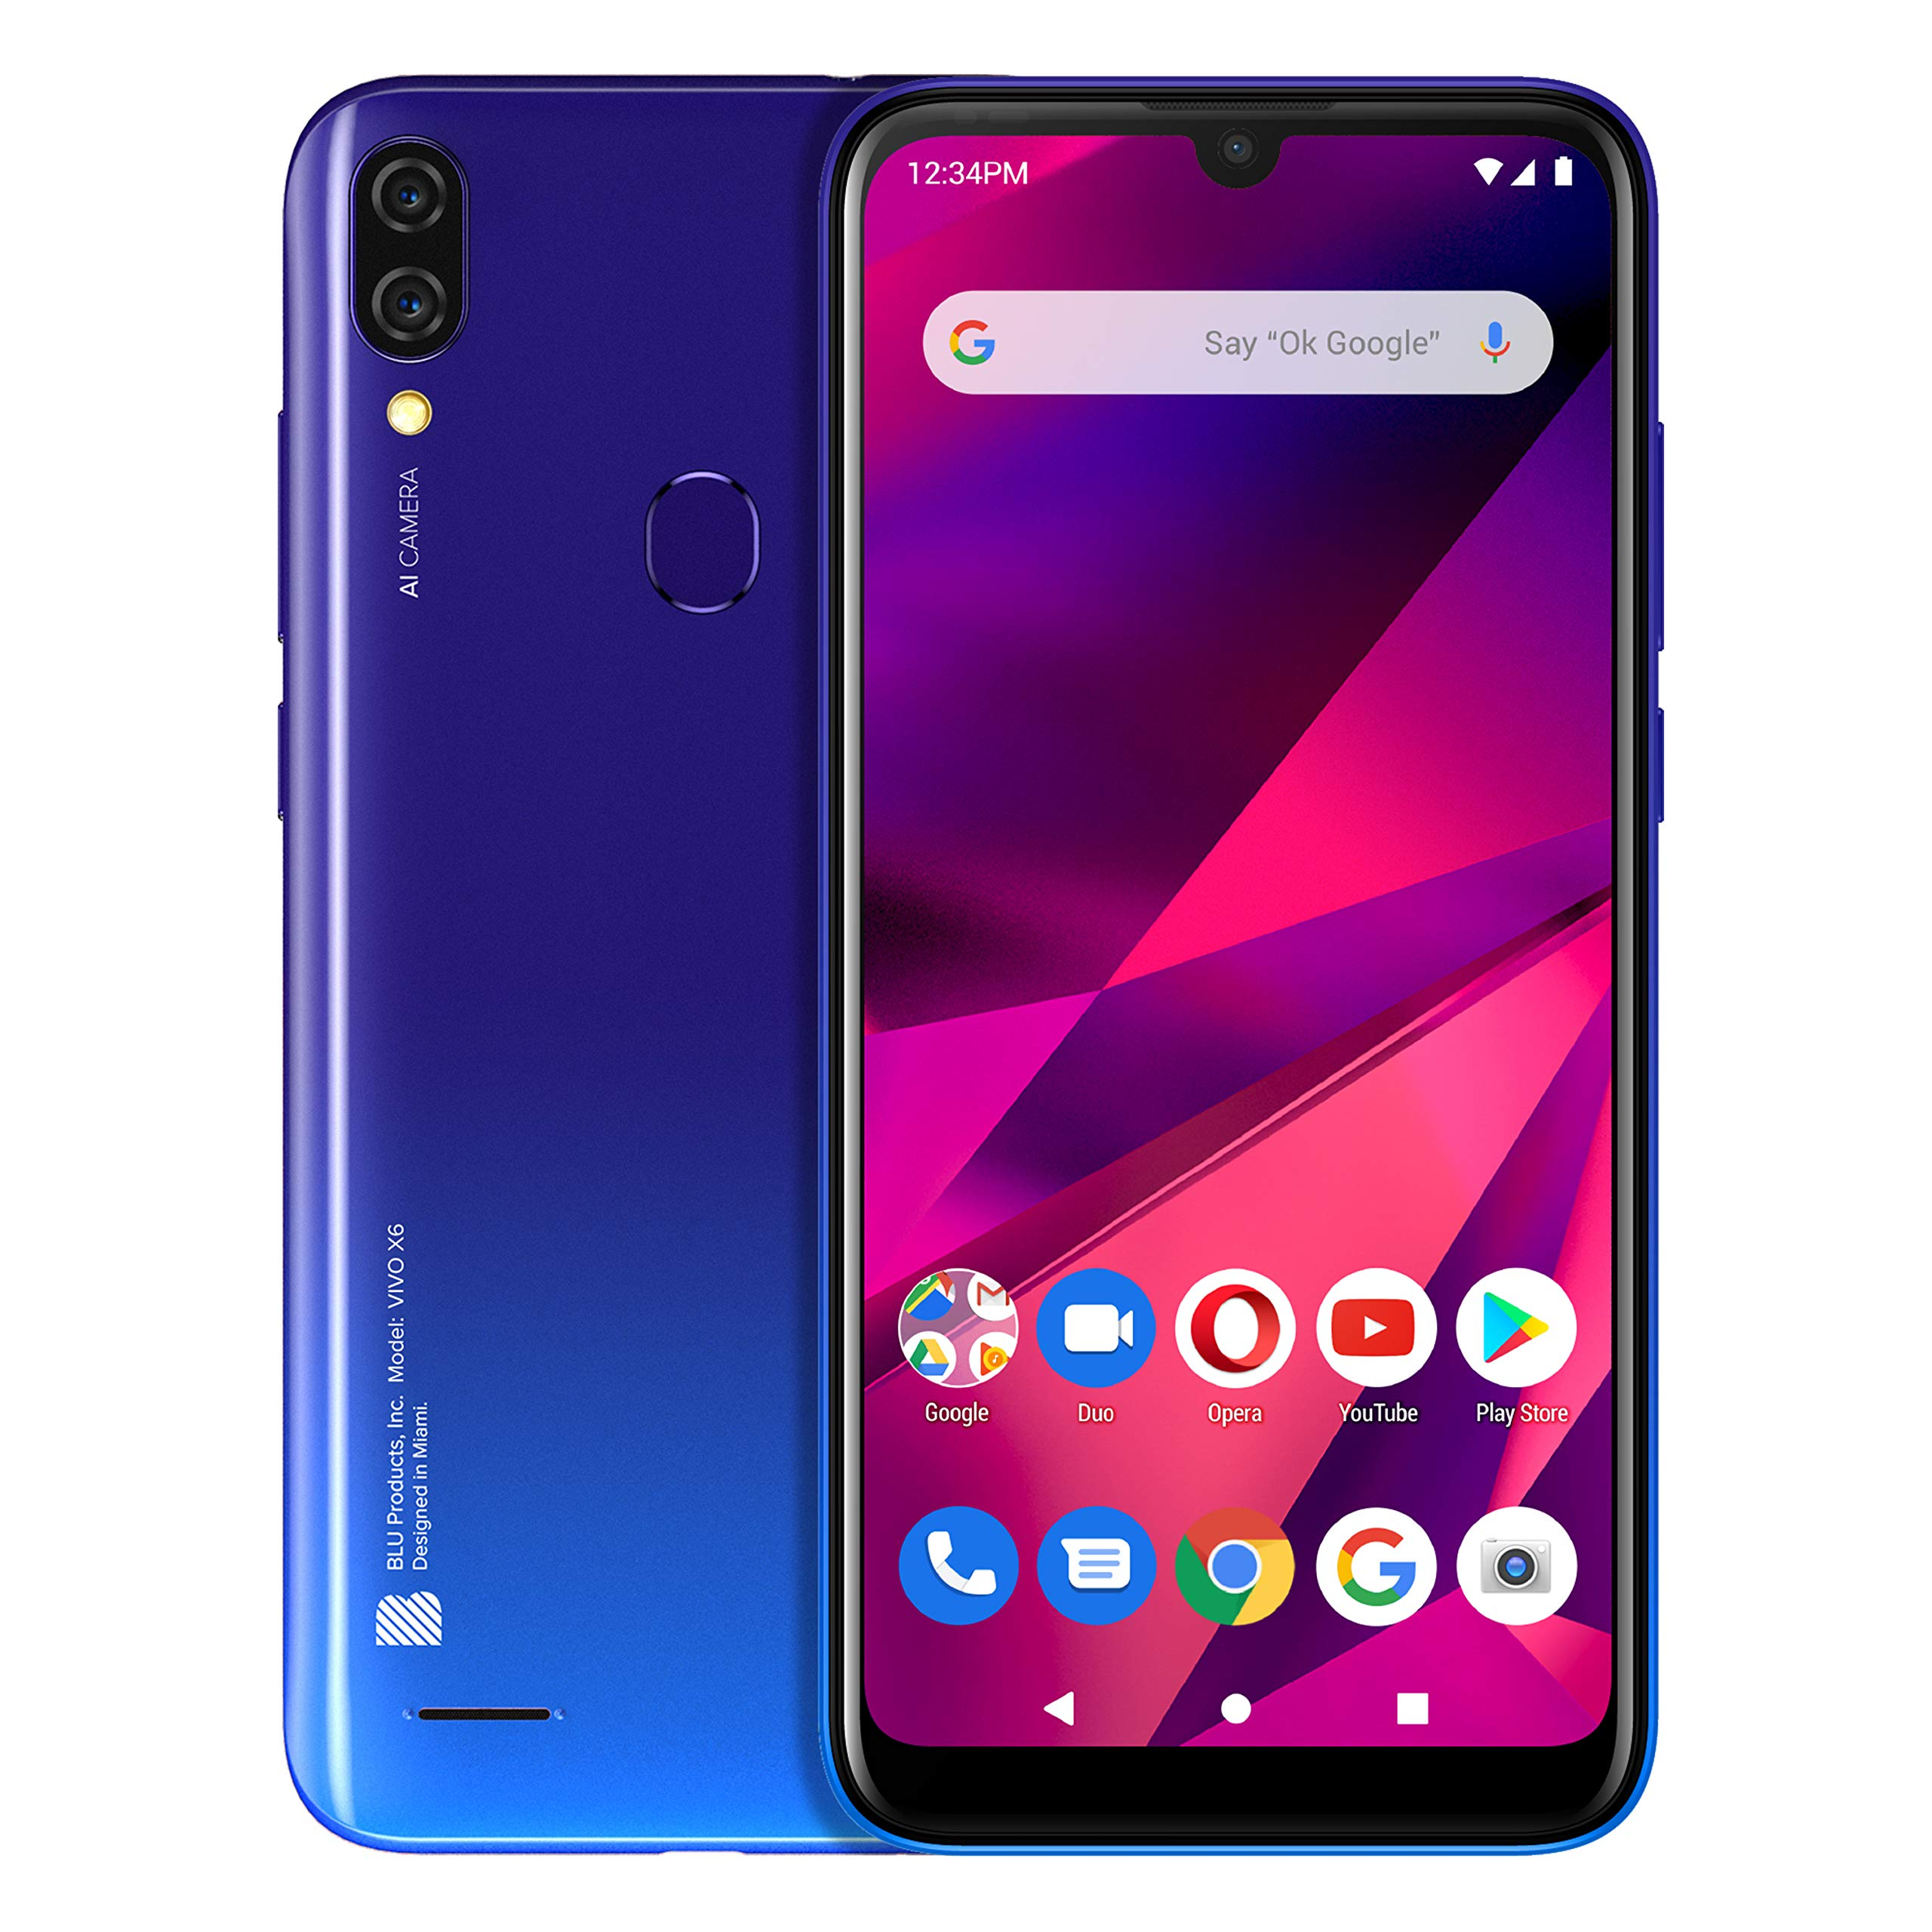 blu-vivo-x6-61-hd-display-64gb3gb-ram-gradient-blue